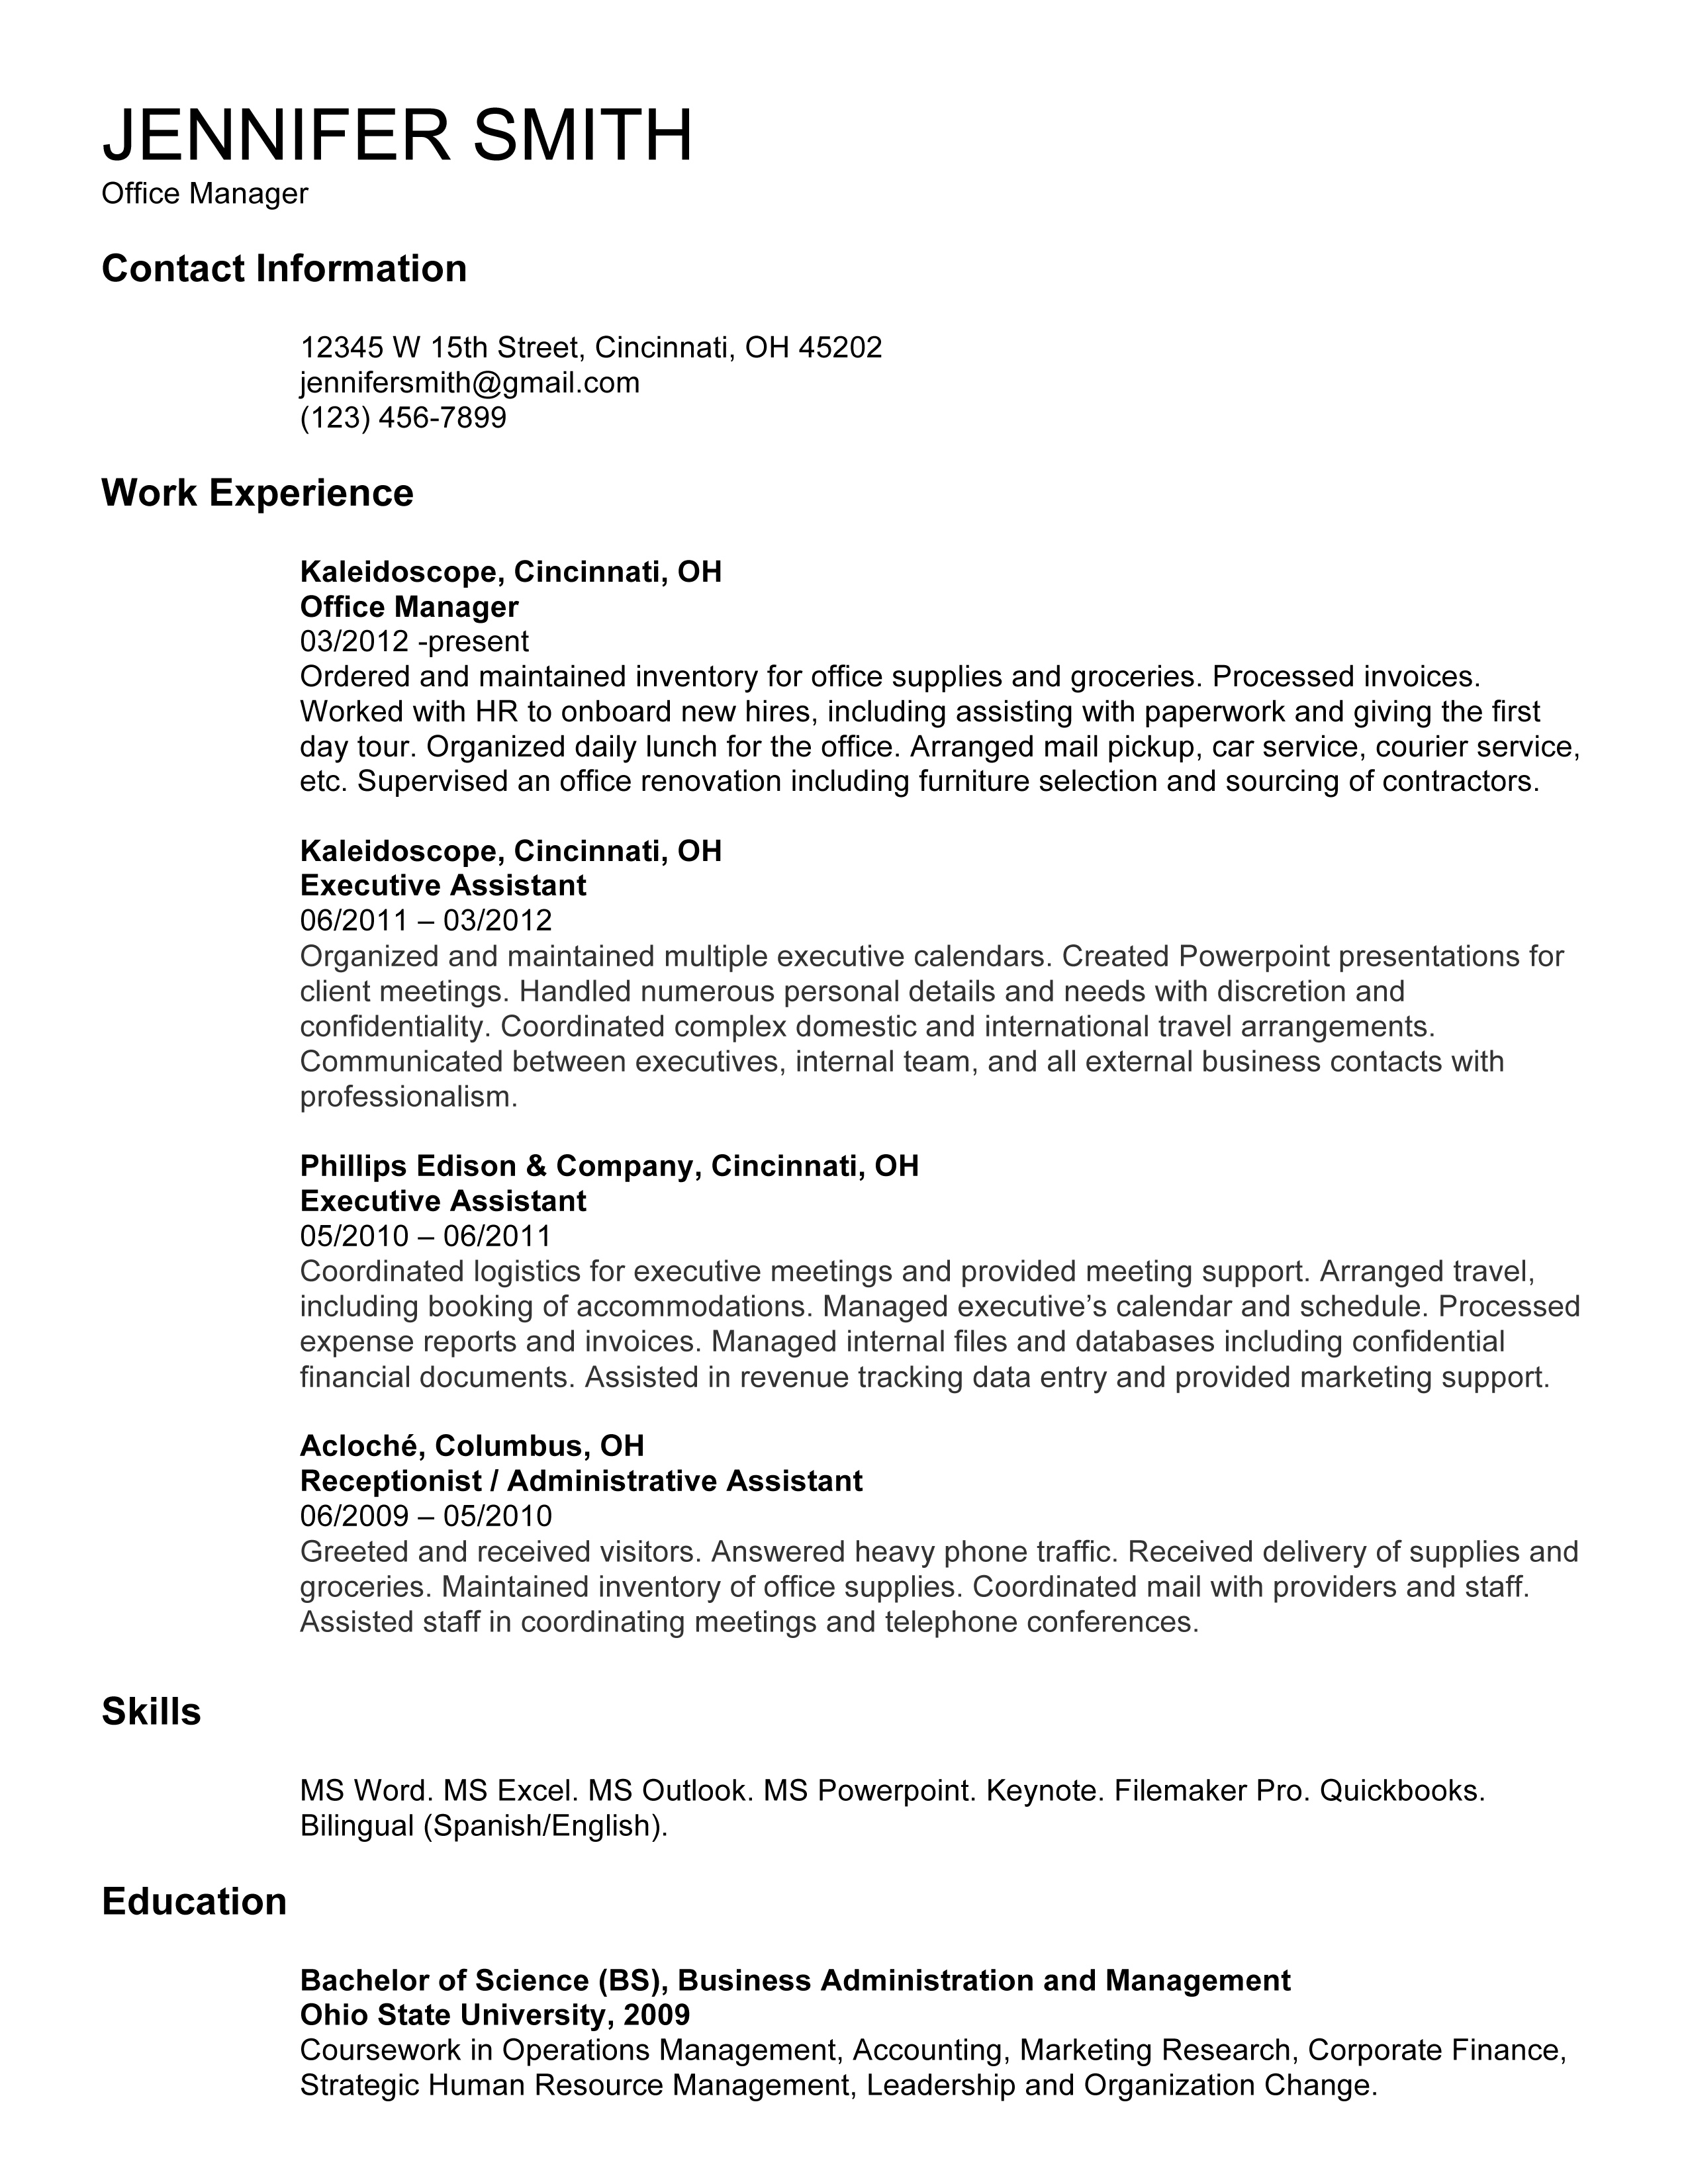 Sample Resume For Office Administrator This Is An Ideal Resume For An Admin Job Aol Finance